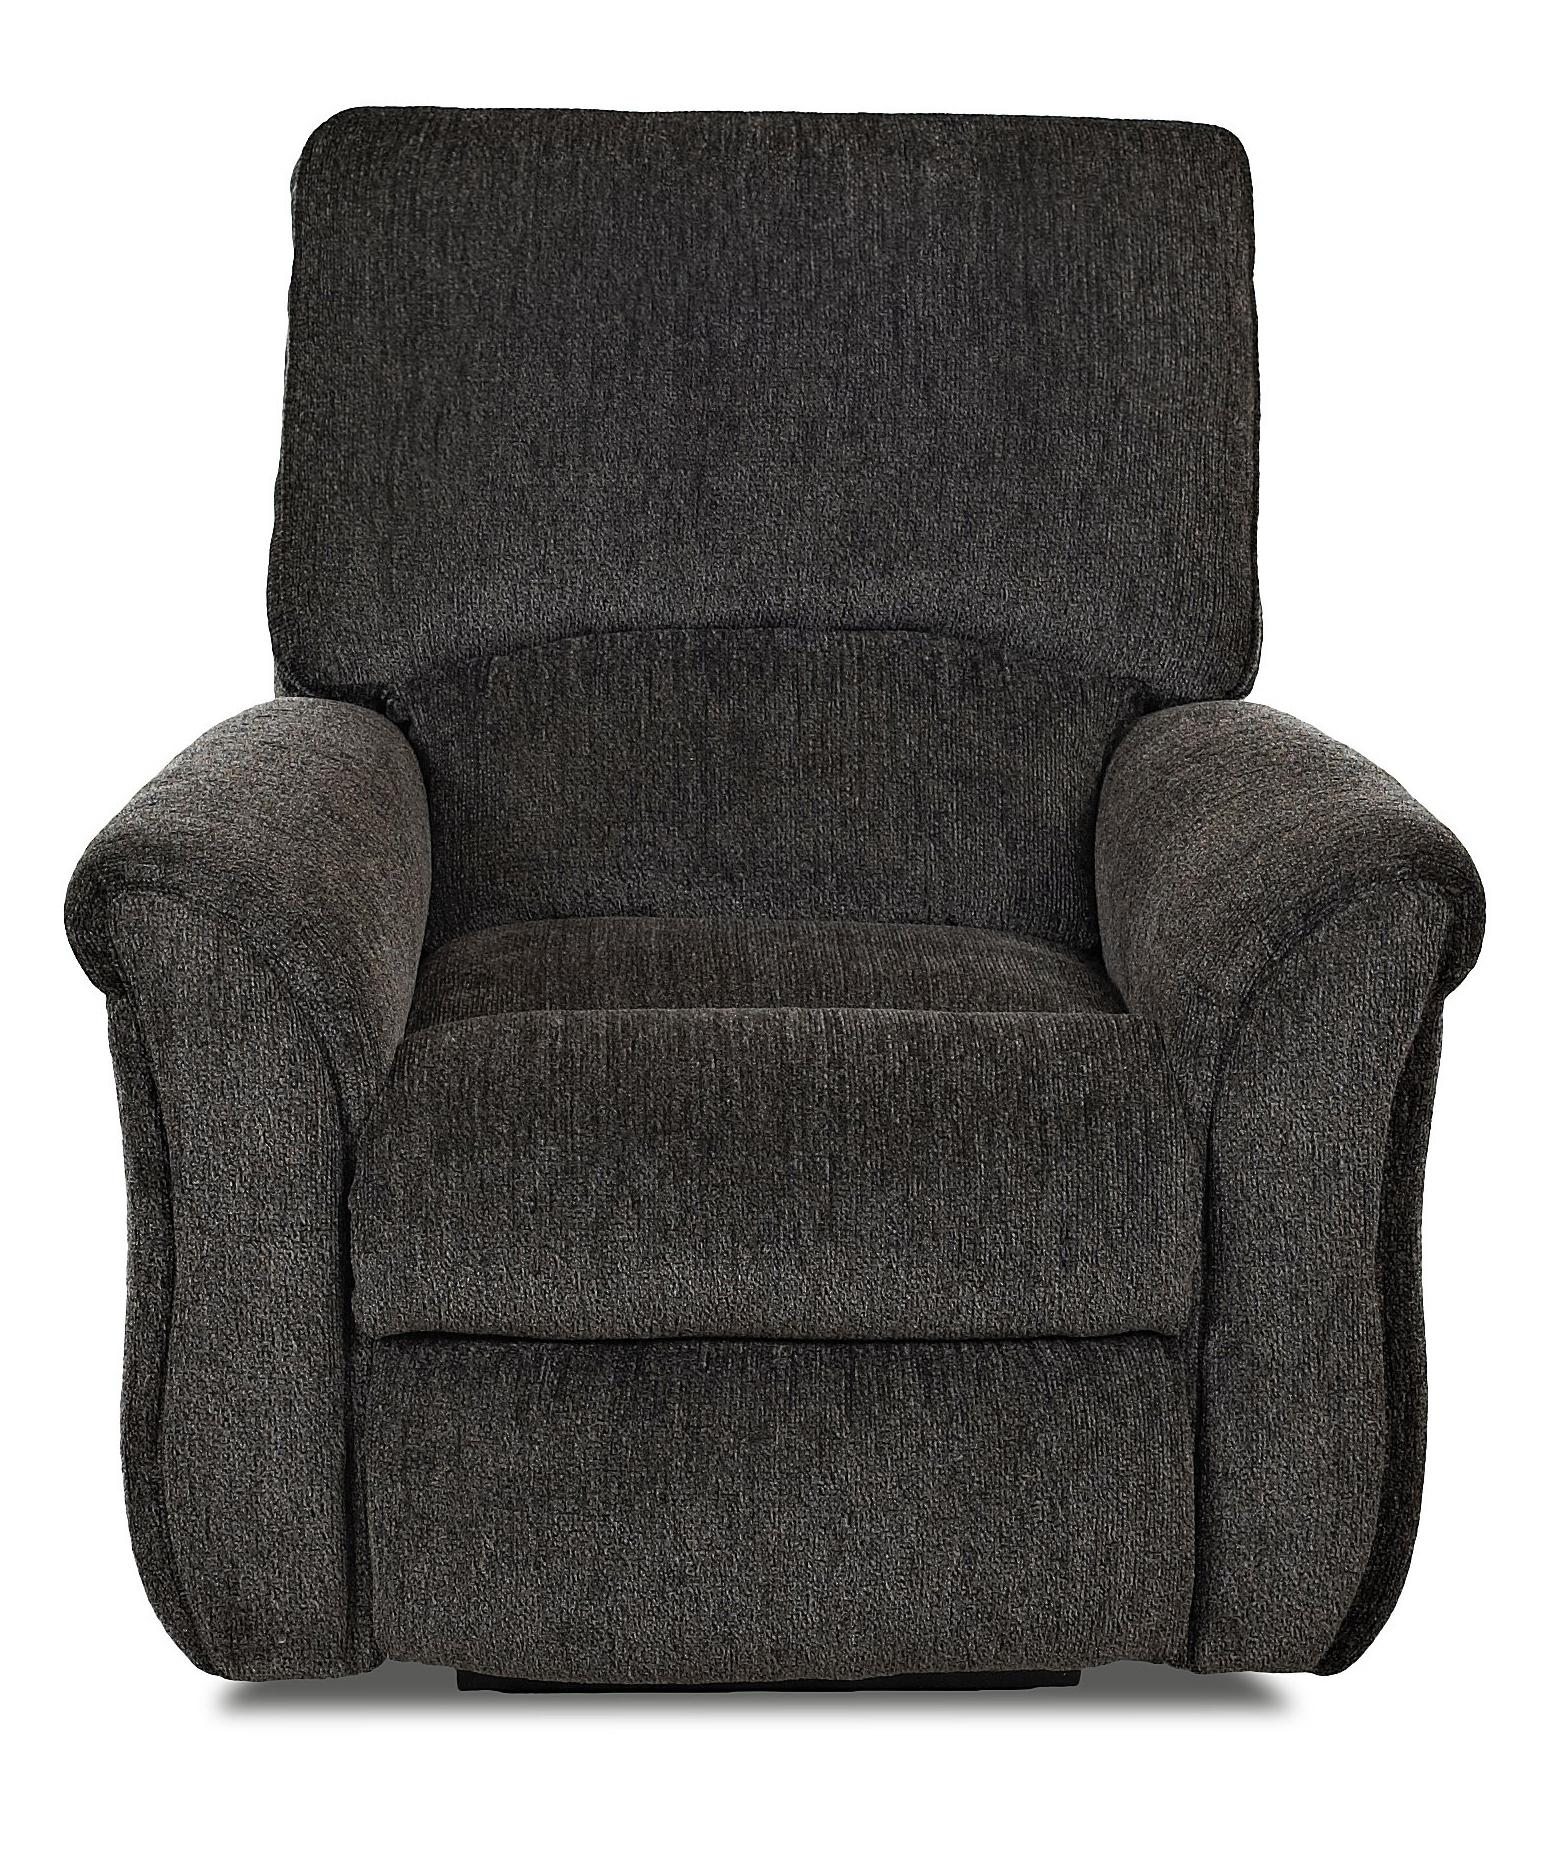 Transitional Power Reclining Chair with Pillow Top Flared Arms